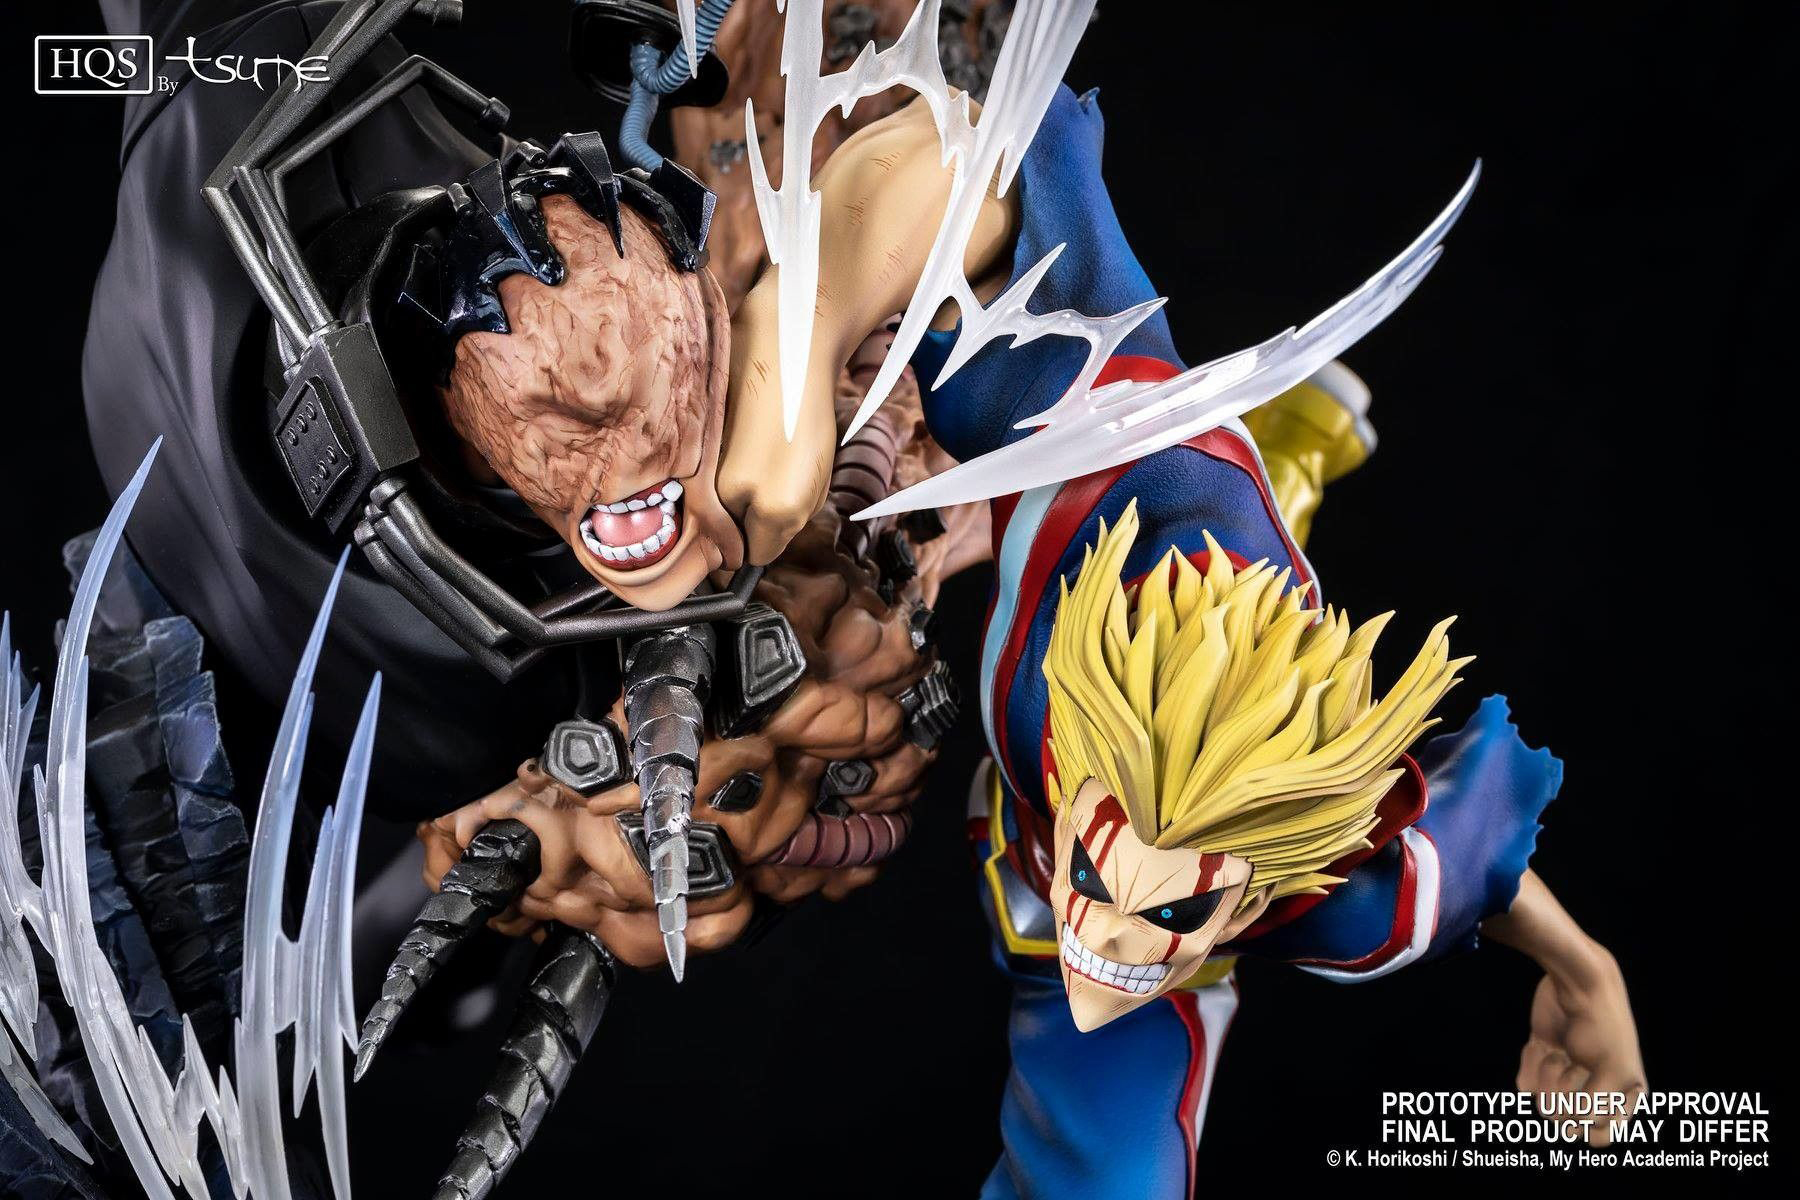 Best My Hero Academia Figures - My Hero Academia HQS United States of Smash Limited Edition Statue by Tsume